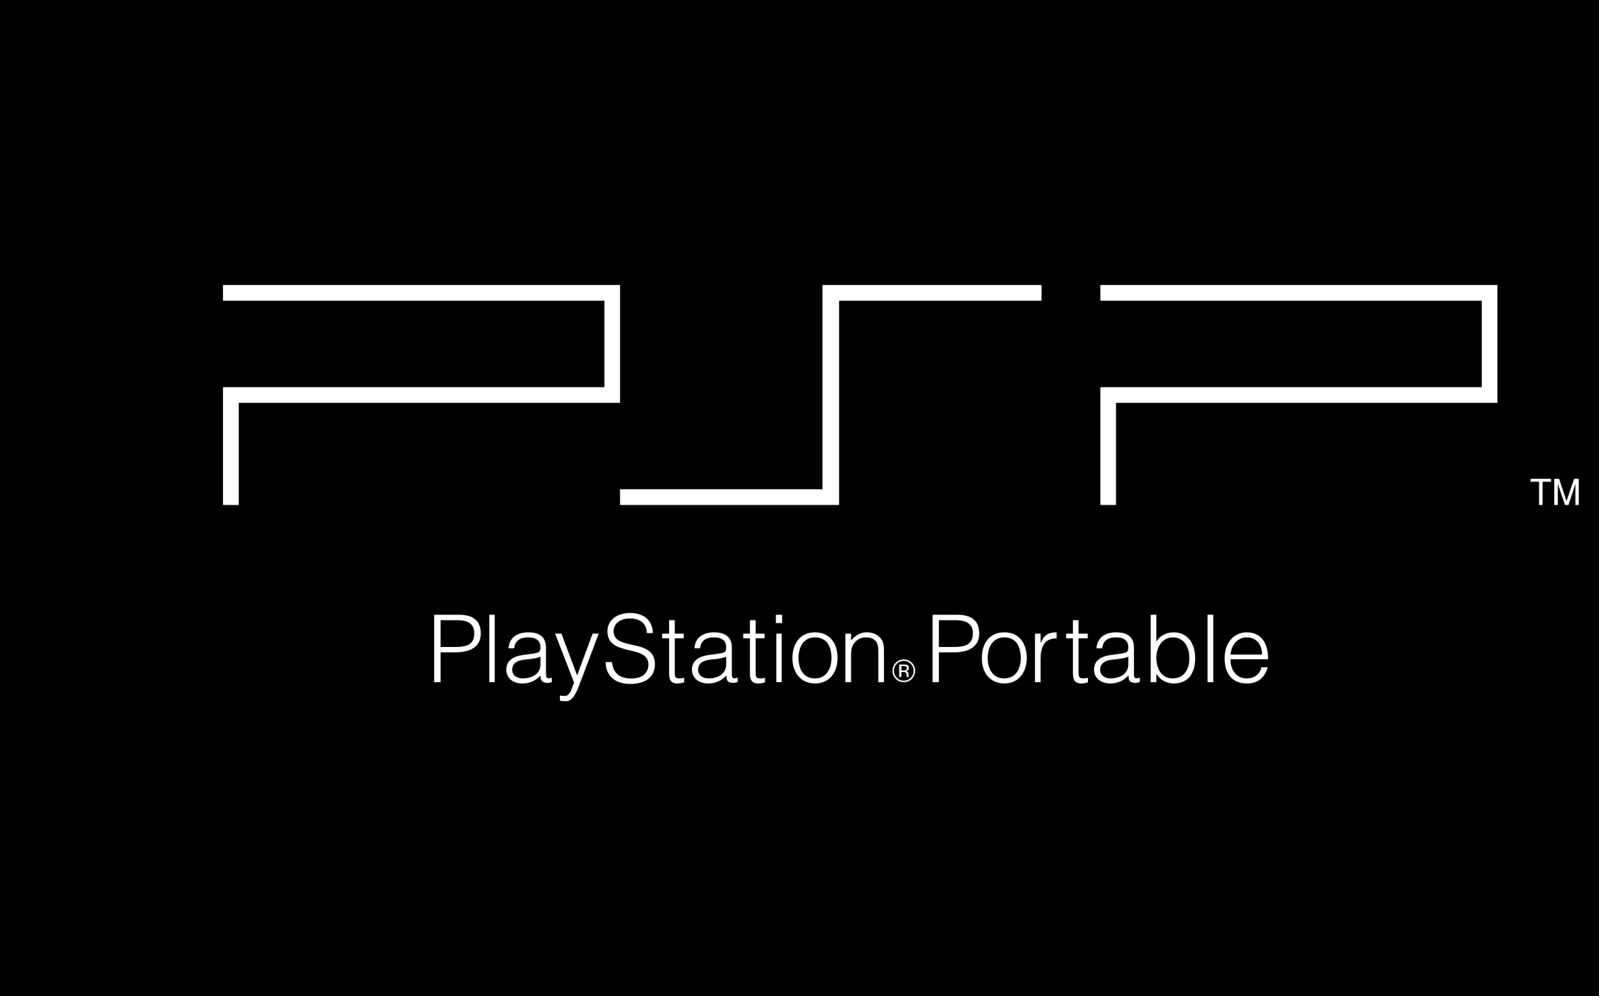 Awesome Psp Wallpapers Psp logo wallpaper logo 1600x1000